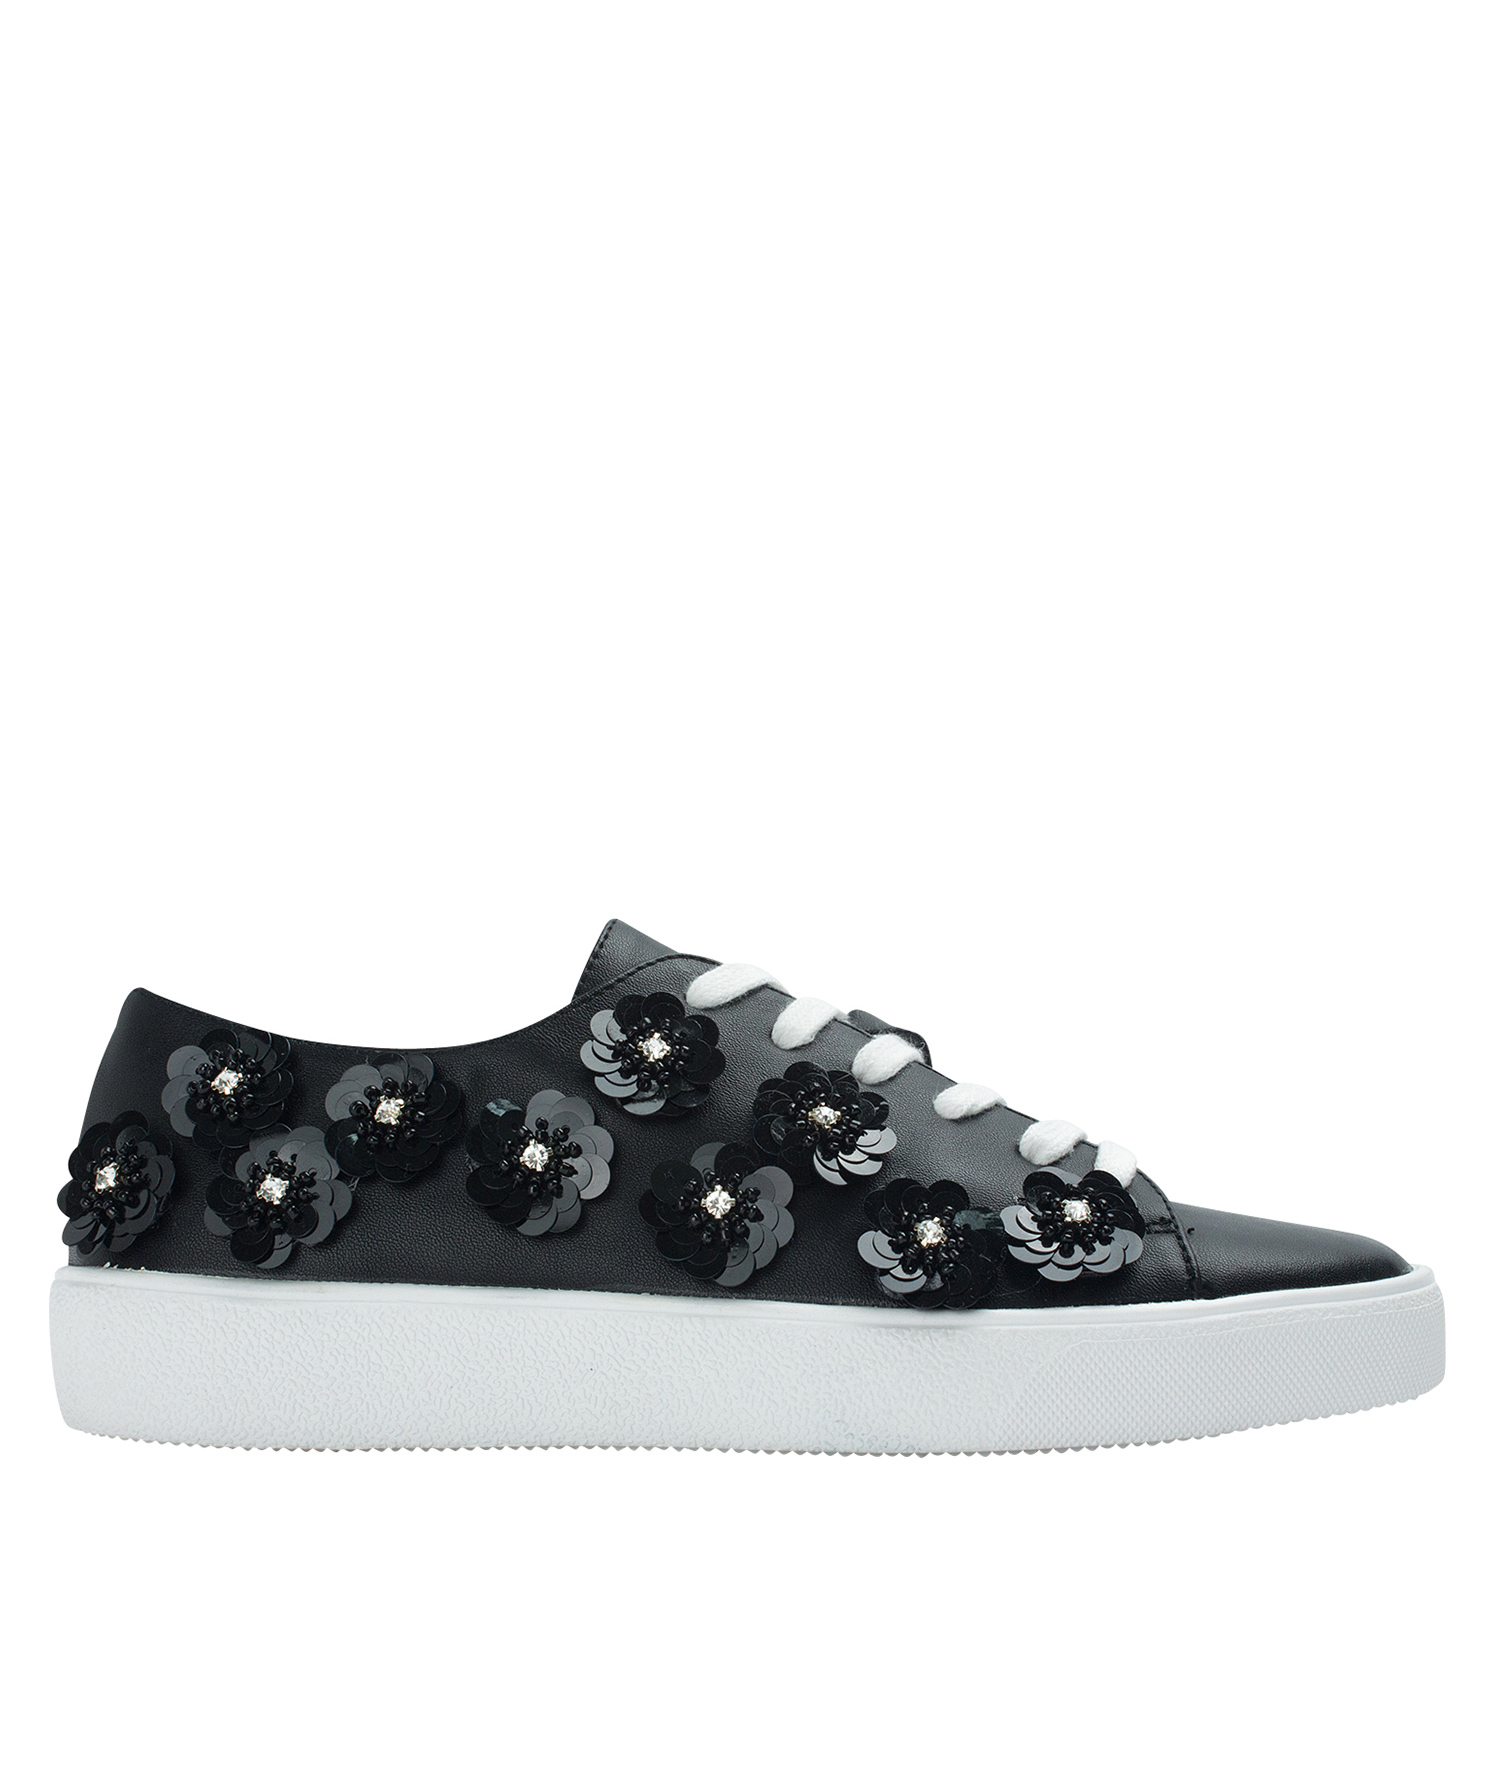 c760447e006f9c Annakastle Womens Sequin Flower Lace-Up Sneakers Black